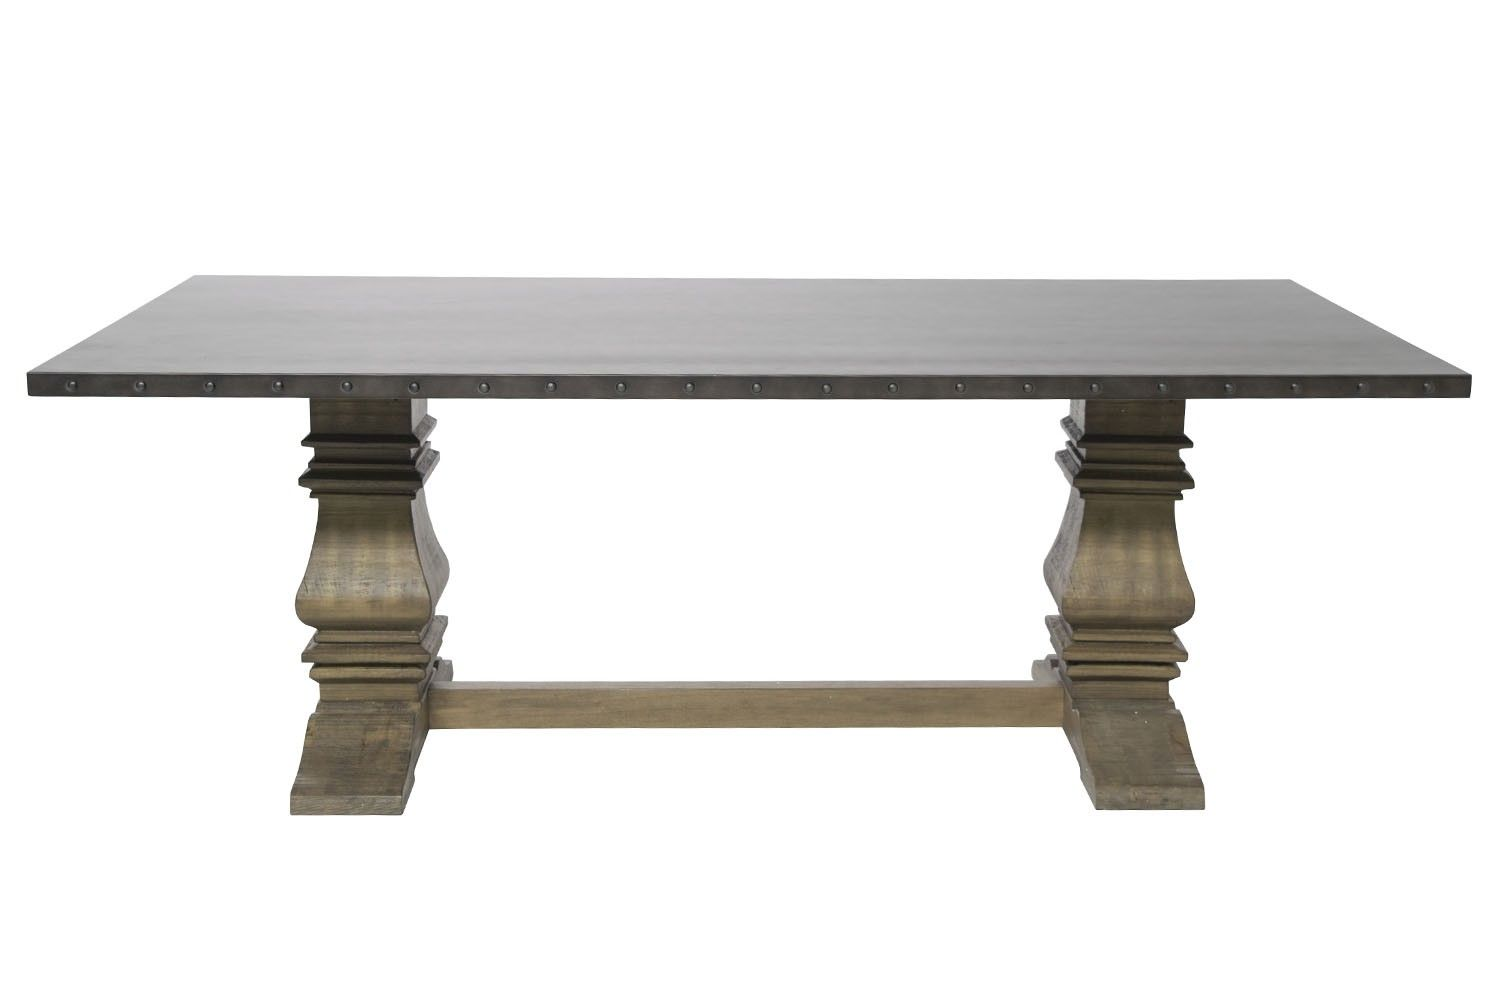 Mor Furniture for Less: The Zinc Dining Table | Mor ...